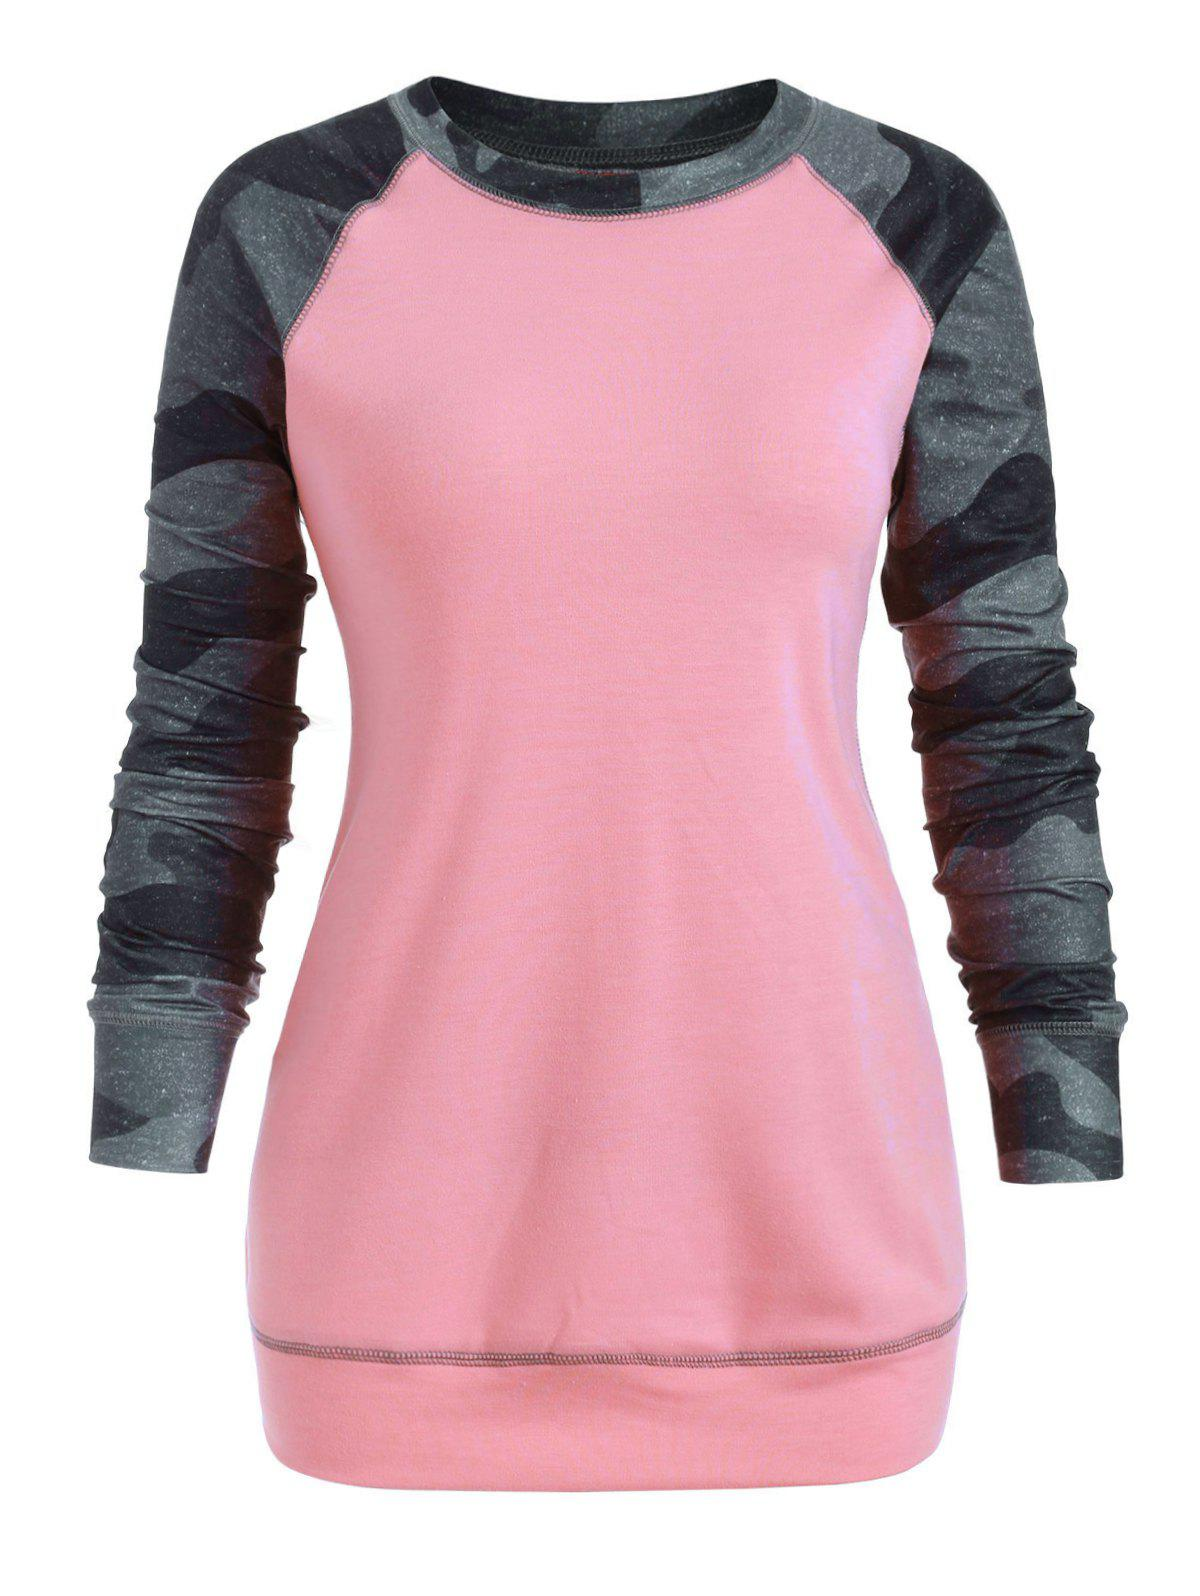 Manches Camo Raglan Brochage Contraste plus Sweat-shirt Taille - Rose L